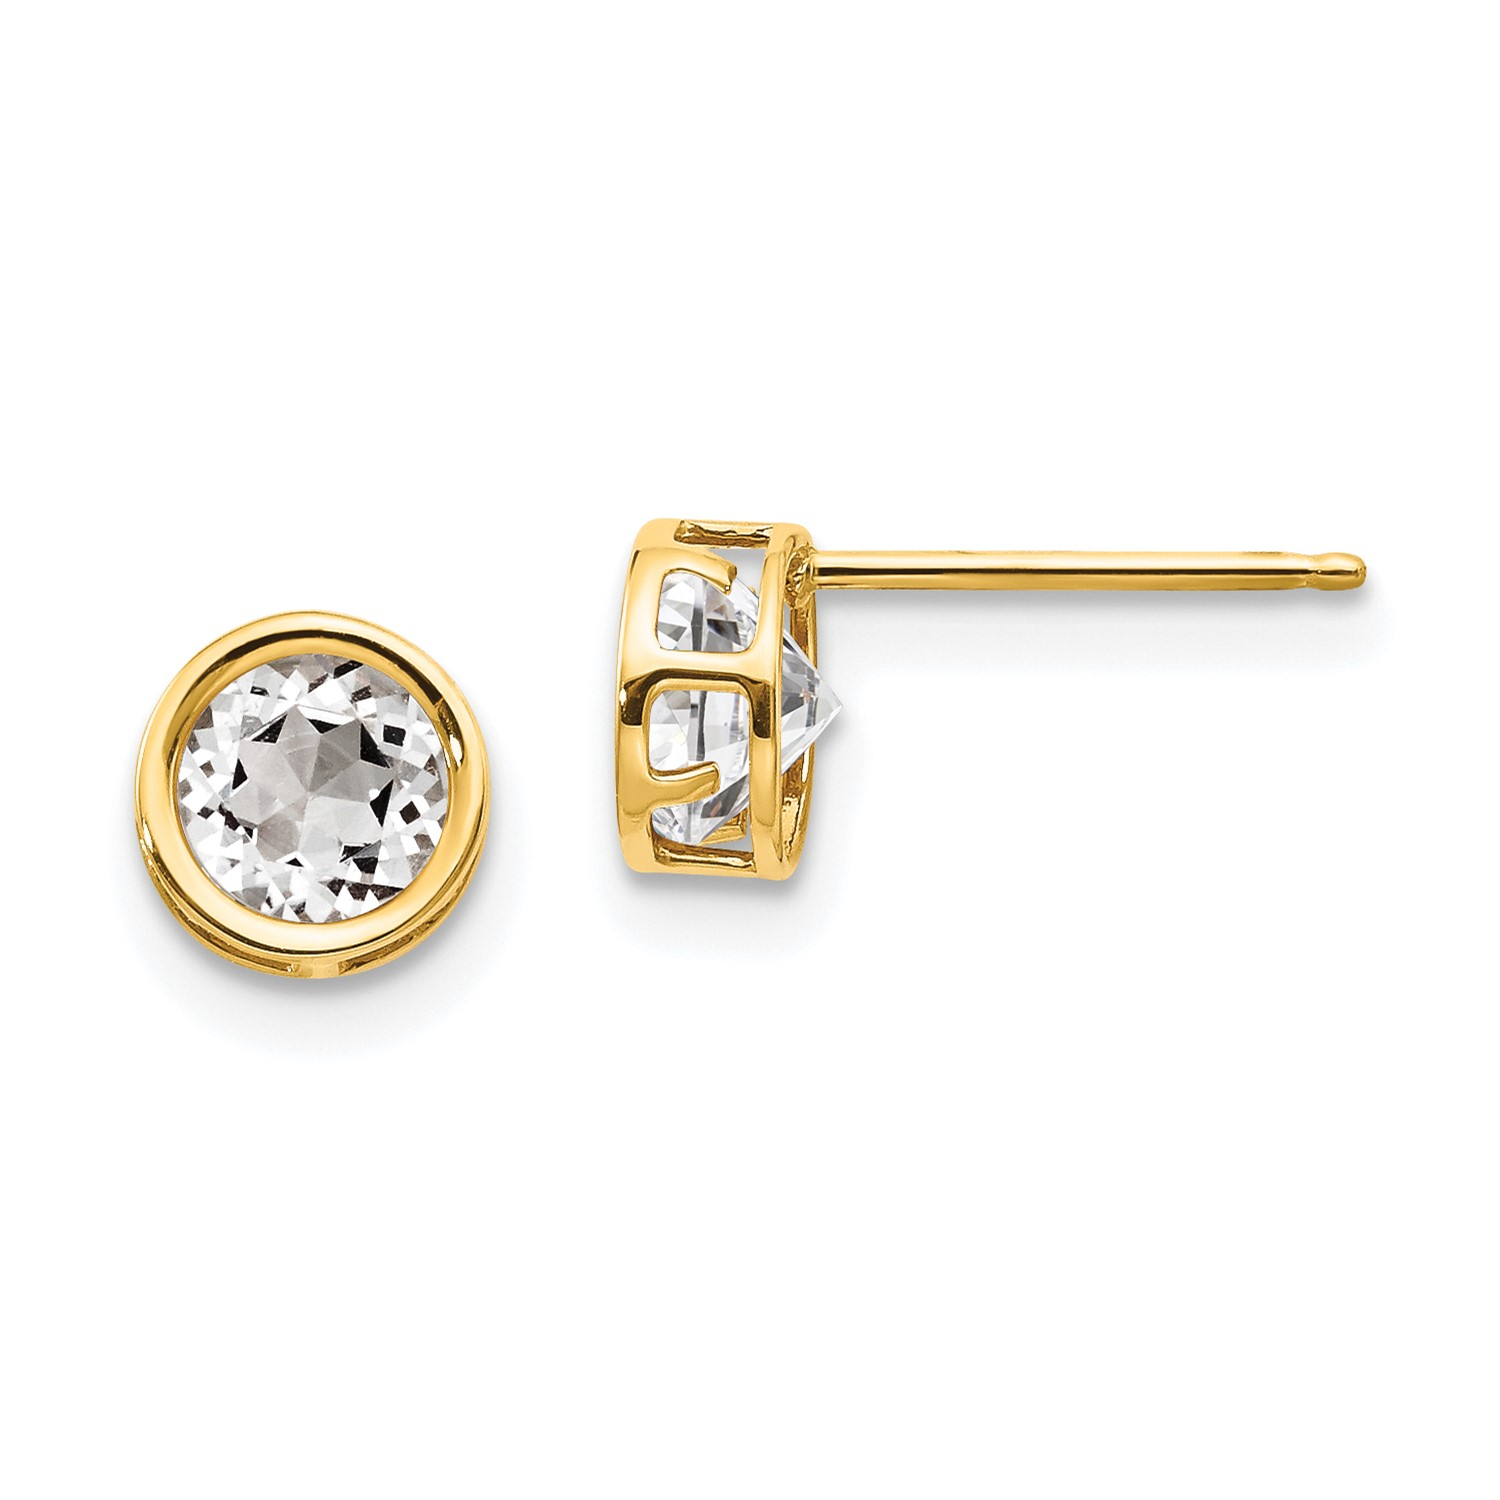 14k Yellow gold 5mm Bezel White Topaz Stud Earrings